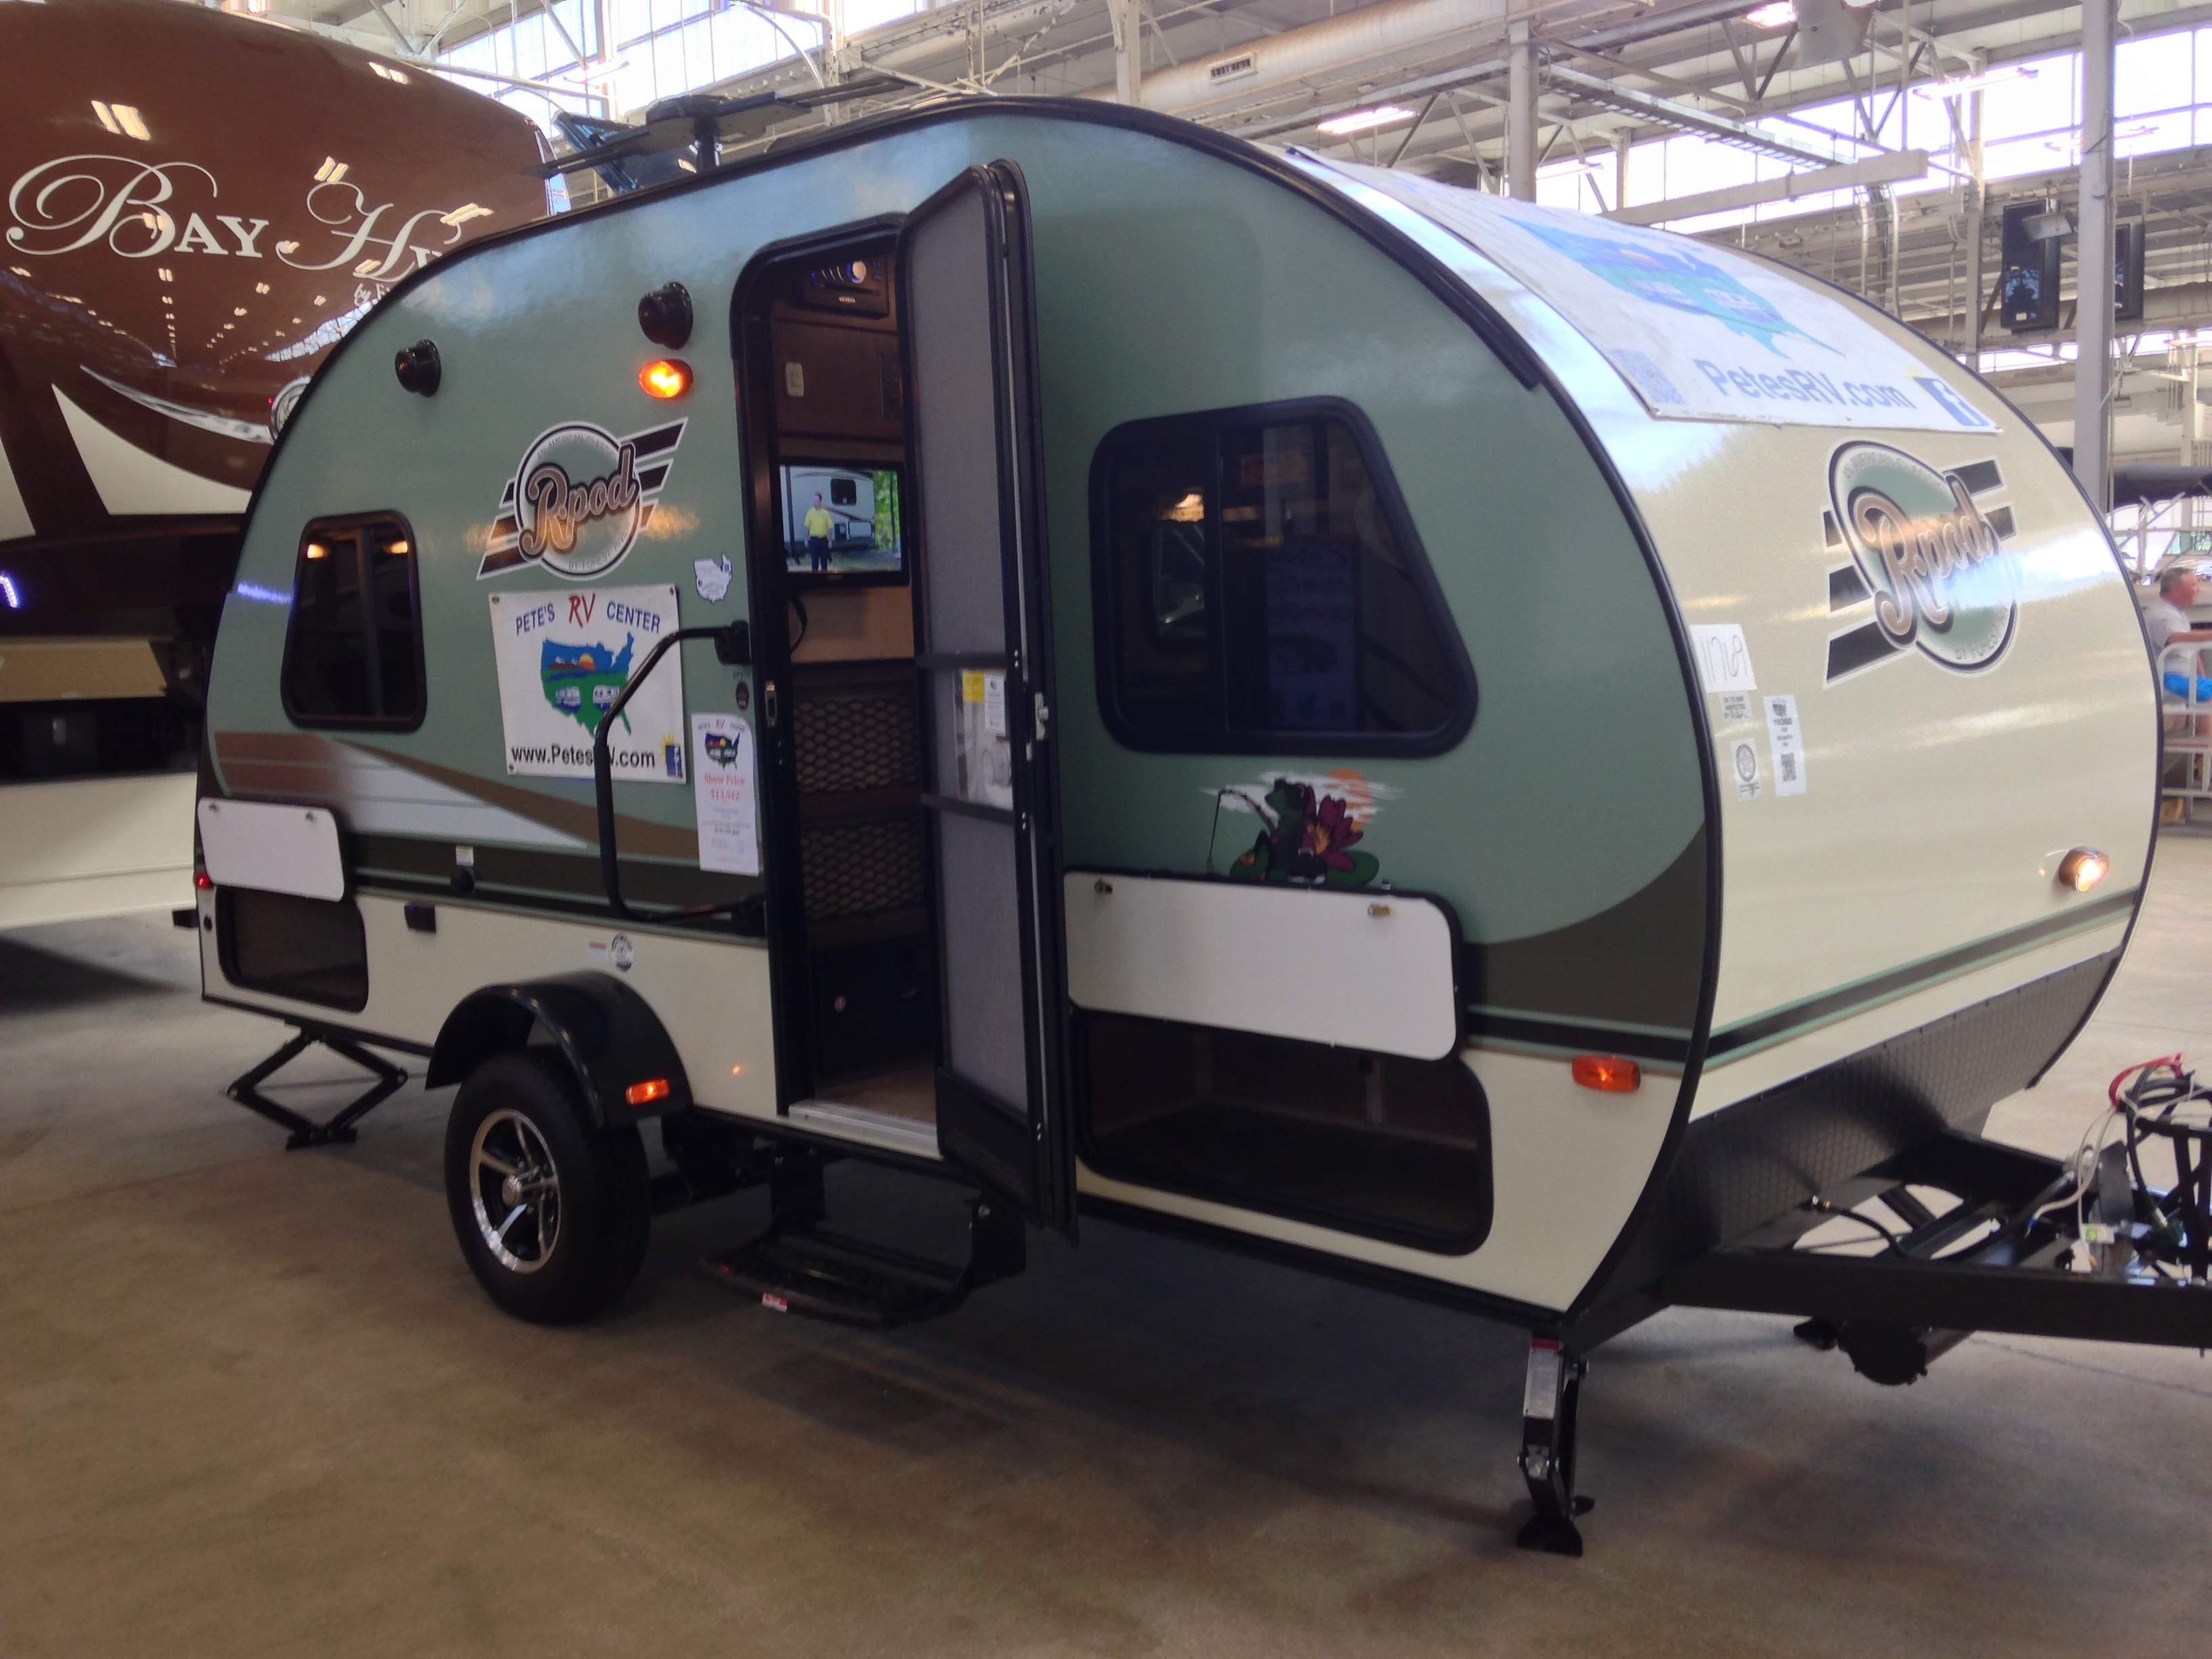 Indy Fall Boat & RV Show Review | The Small Trailer Enthusiast